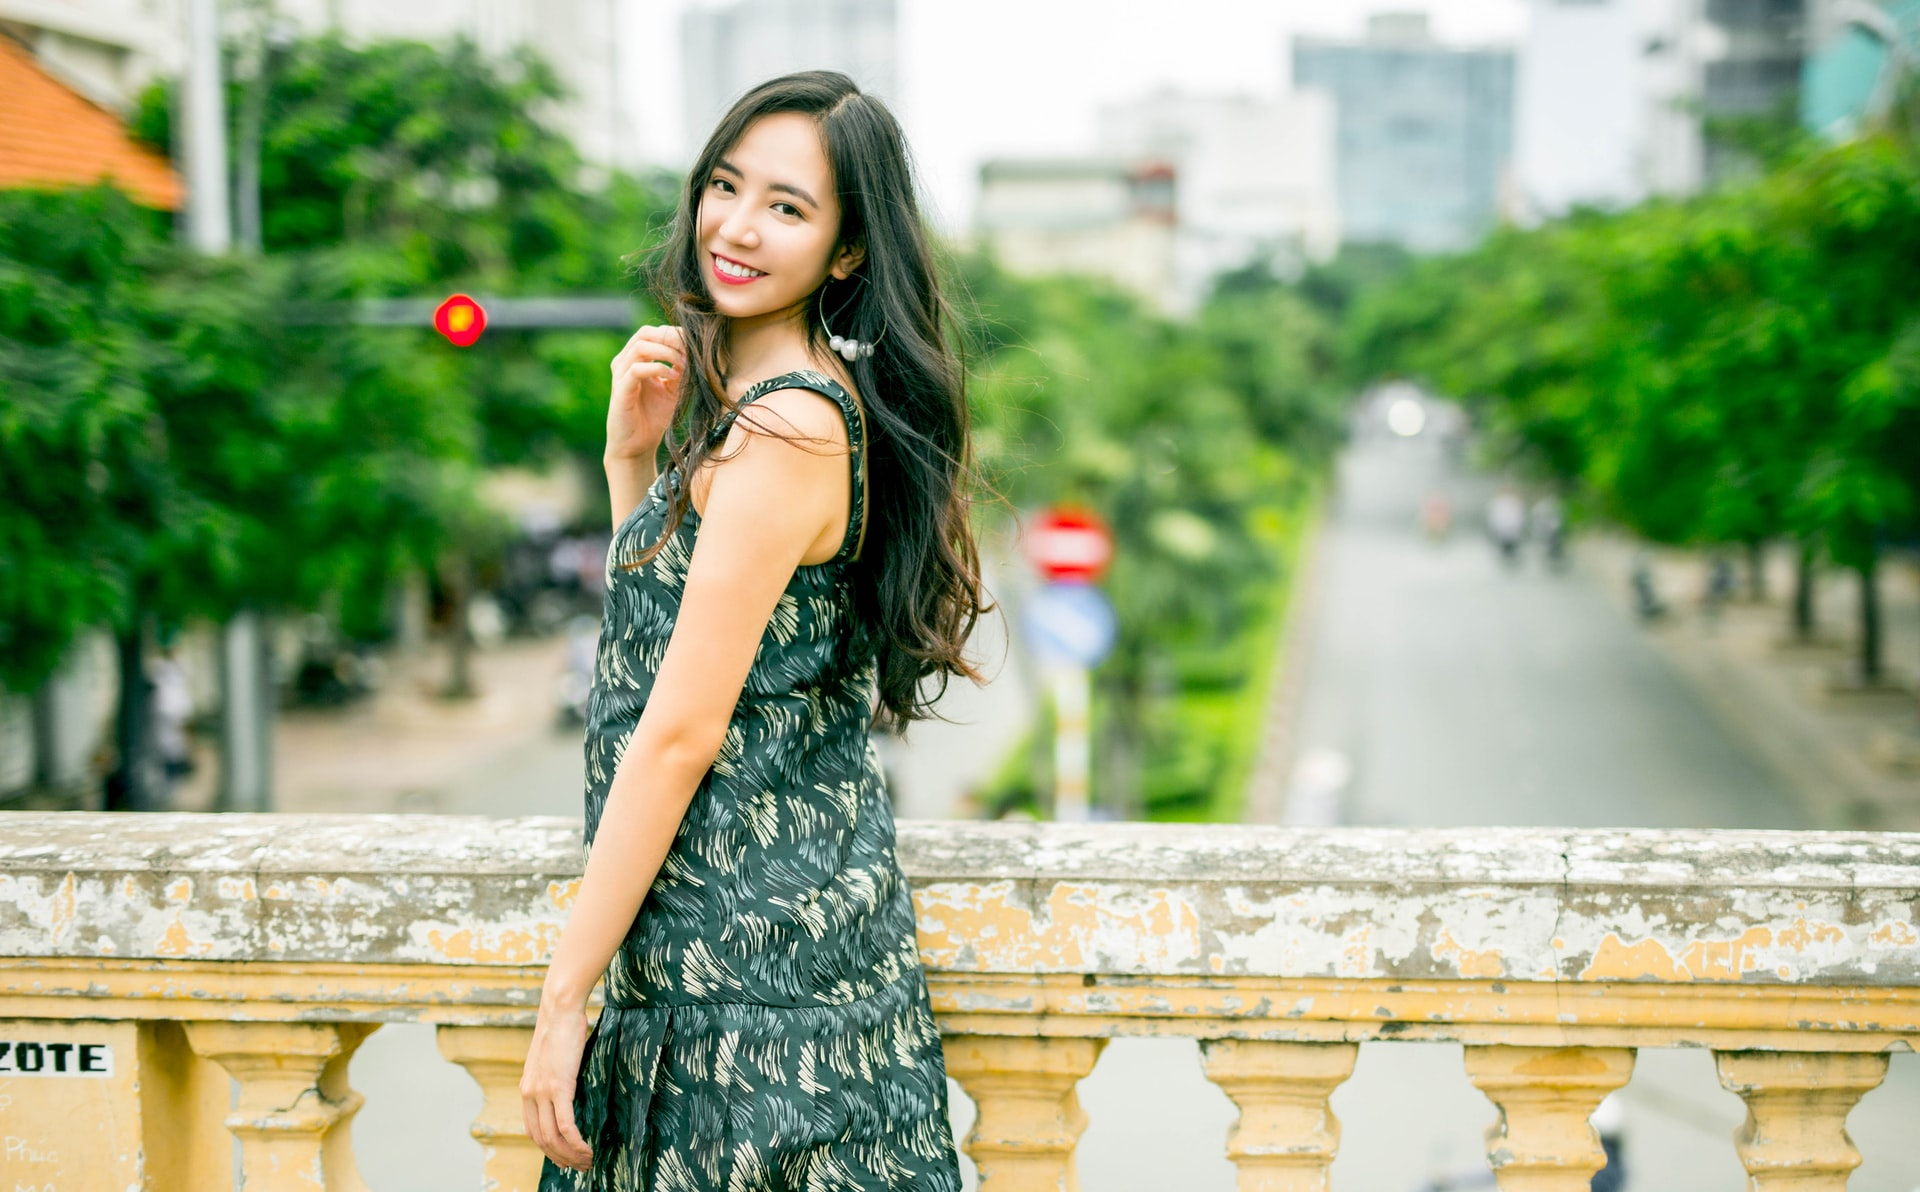 smiling asian girl in dress